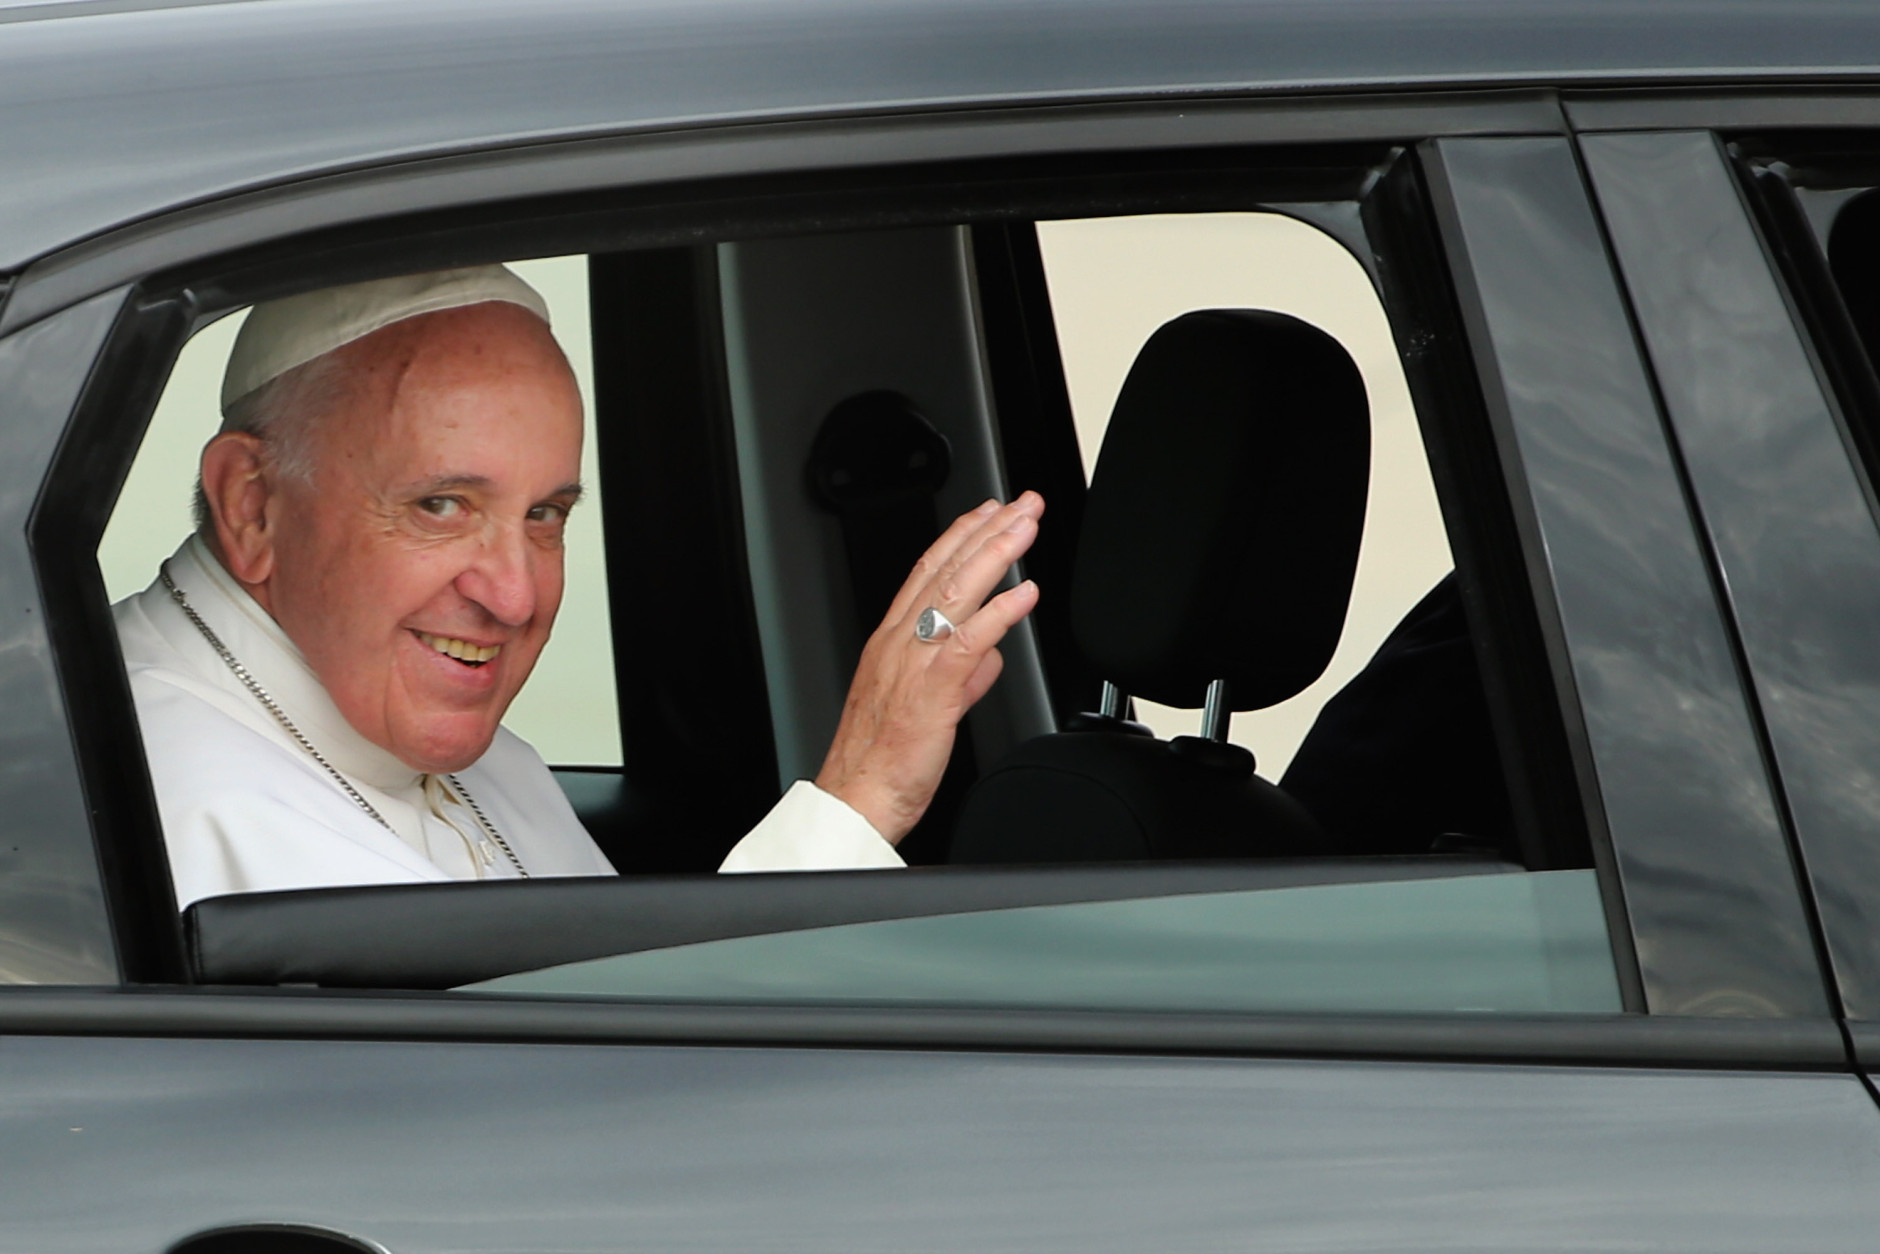 JOINT BASE ANDREWS, MD - SEPTEMBER 22:  Pope Francis waves from the back of his Fiat after arriving from Cuba September 22, 2015 at Joint Base Andrews, Maryland. Francis will be visiting Washington, New York City and Philadelphia during his first trip to the United States as pope.  (Photo by Chip Somodevilla/Getty Images)